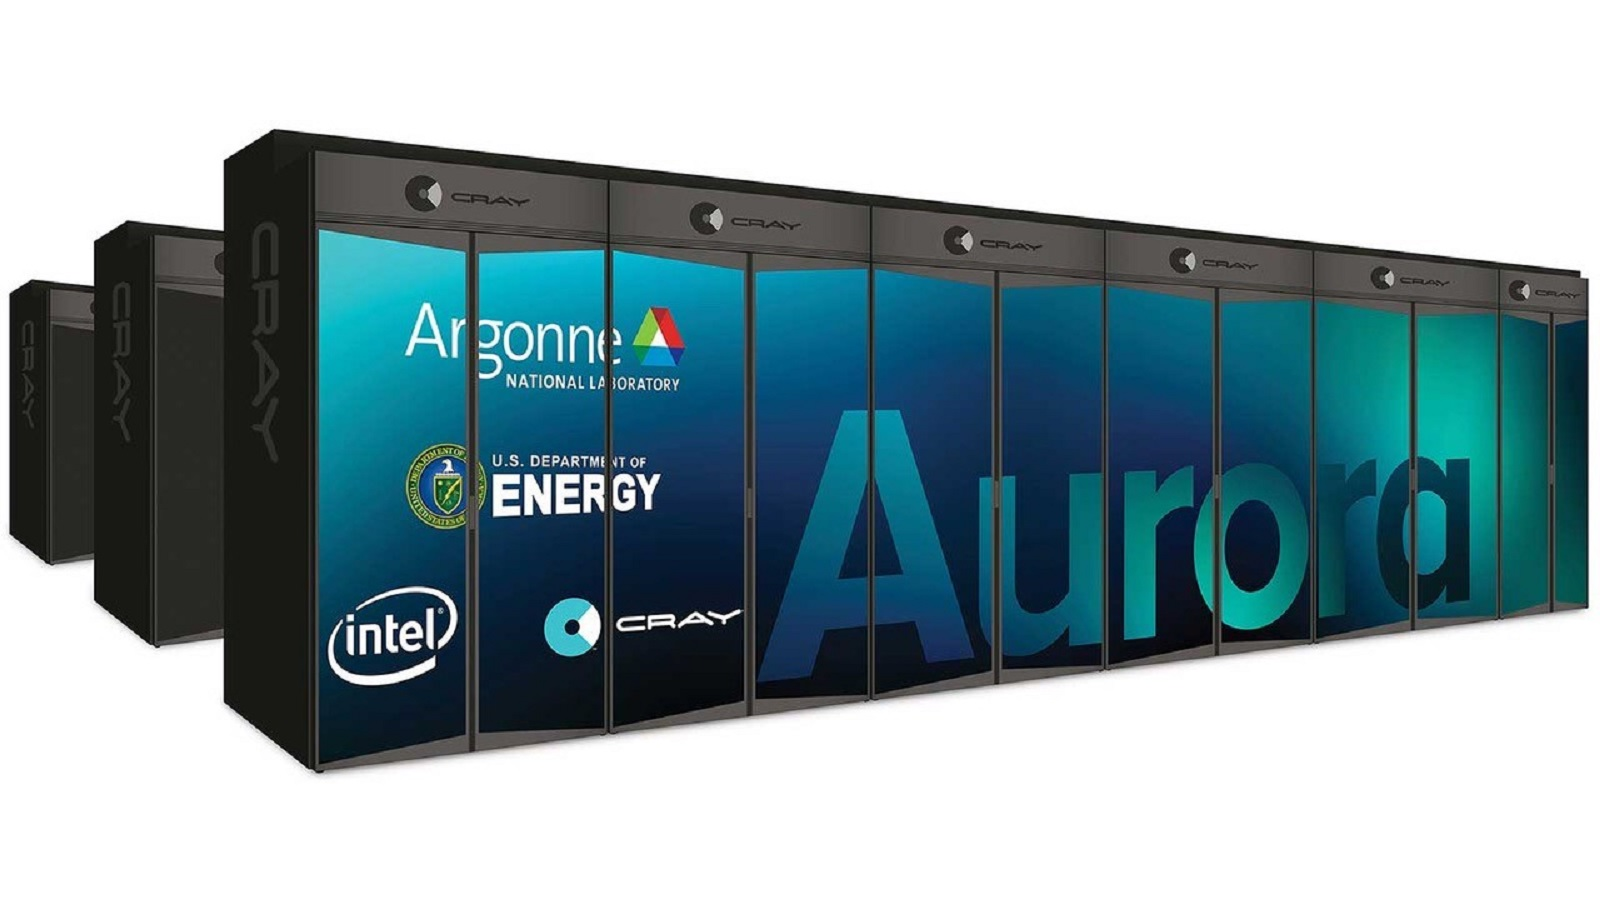 The Aurora supercomputer is slated for delivery in 2021. (Image by Argonne National Laboratory.)